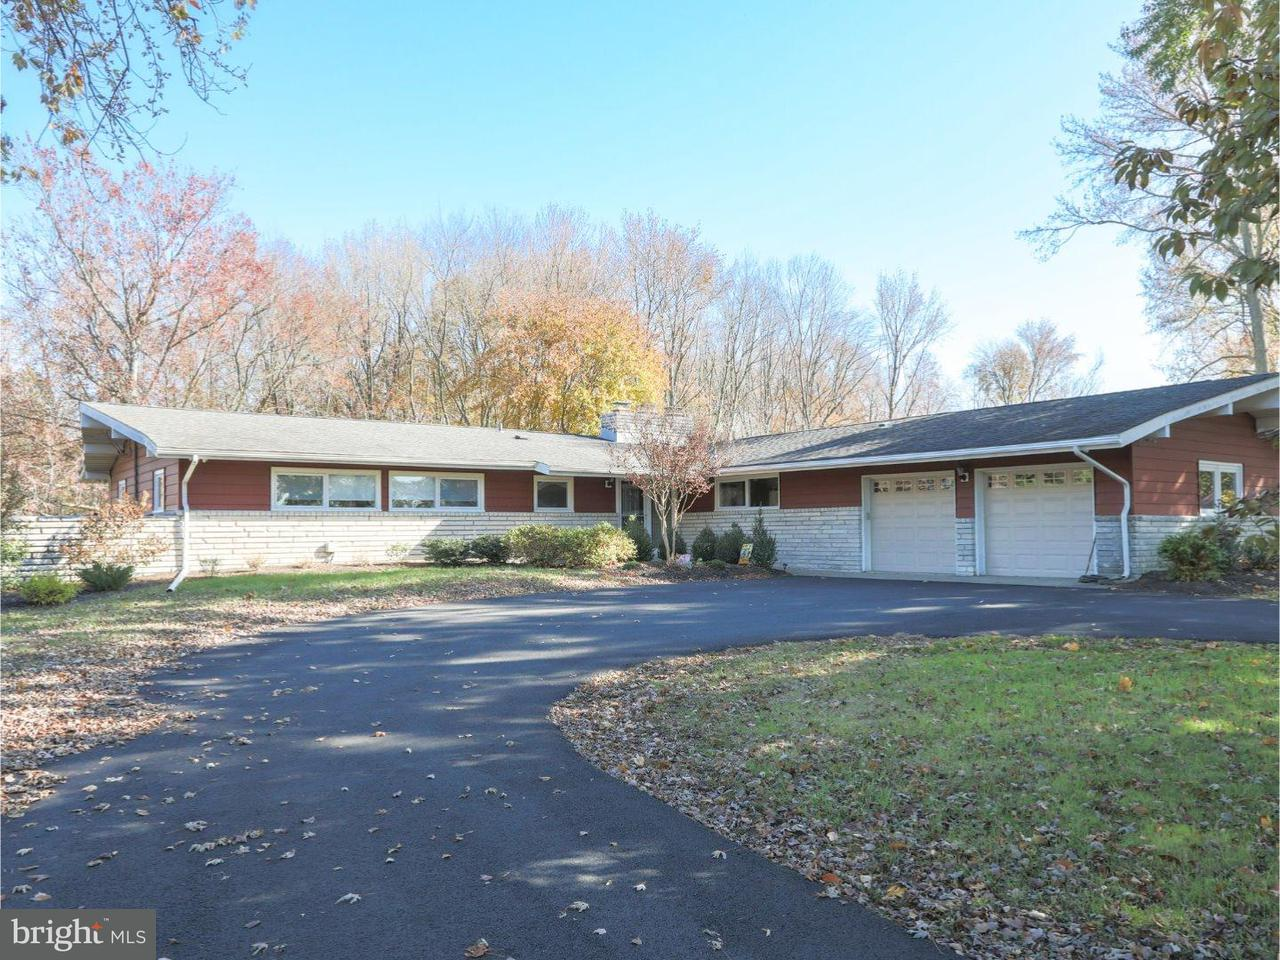 Single Family Home for Sale at 82 W COHAWKIN Road Clarksboro, New Jersey 08020 United States